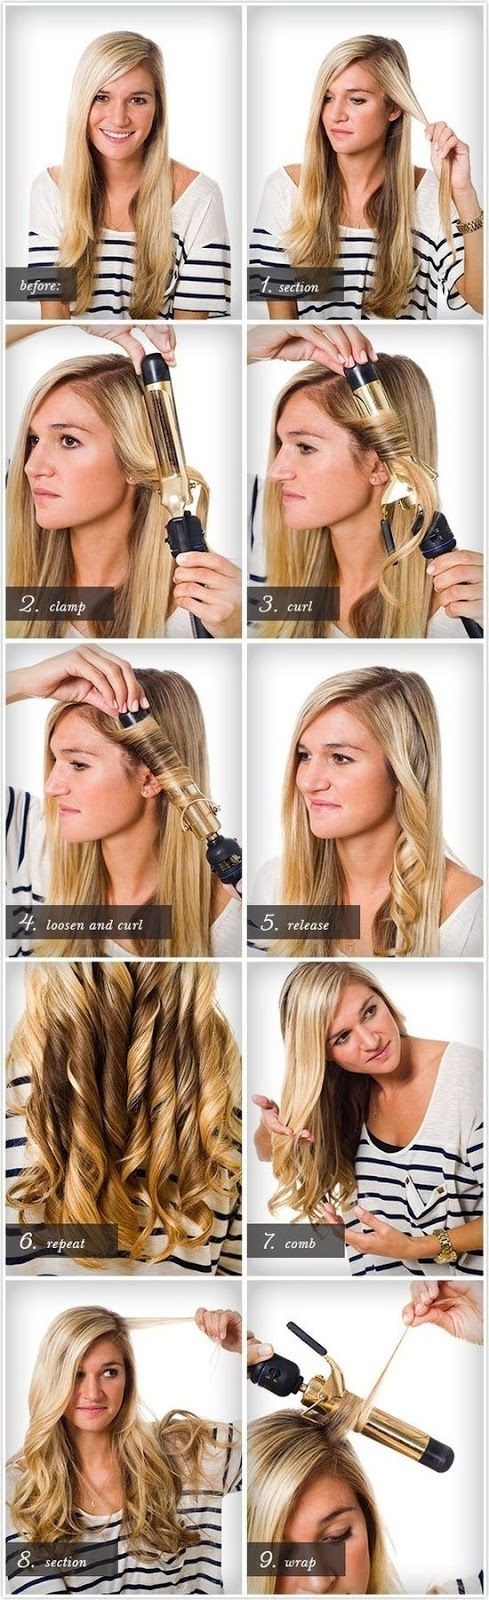 How to curl your hair People always ask how I curl my hair.. This is a perfect tutorial on the exact way I do it!